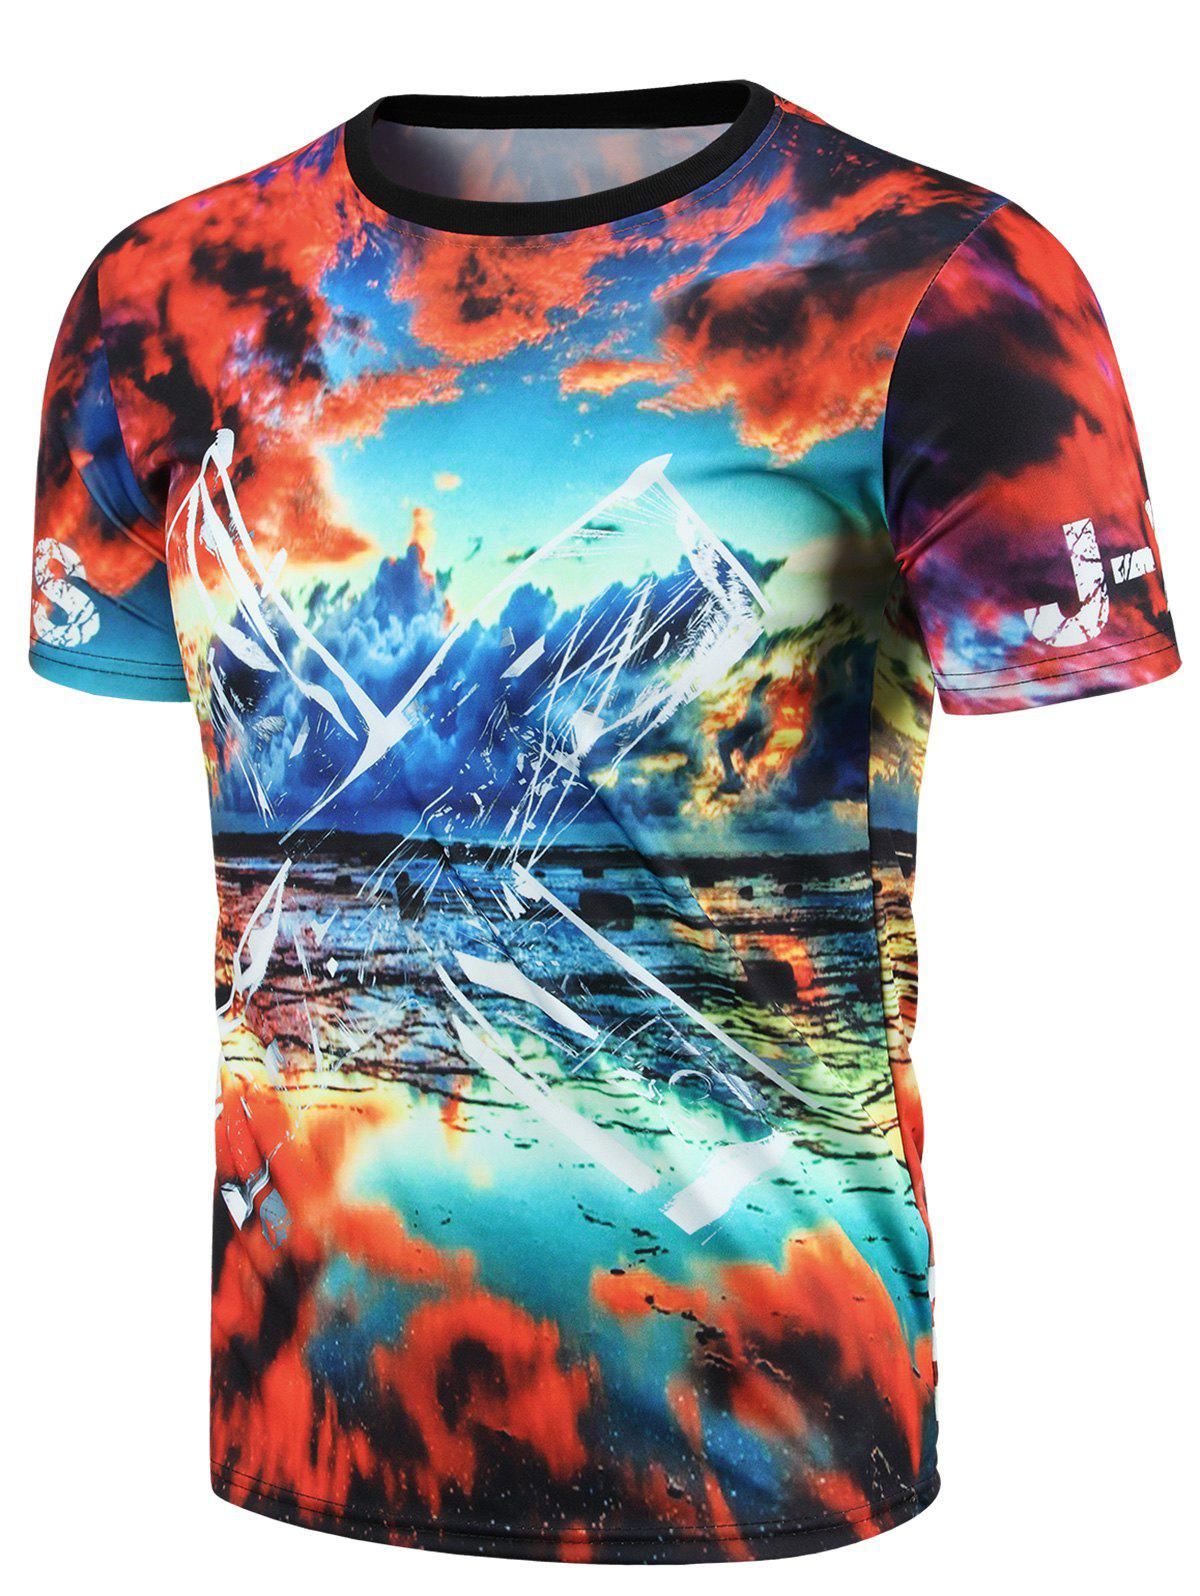 3D Colorful Sky Print Round Neck Short Sleeve Men's T-Shirt - COLORMIX 2XL